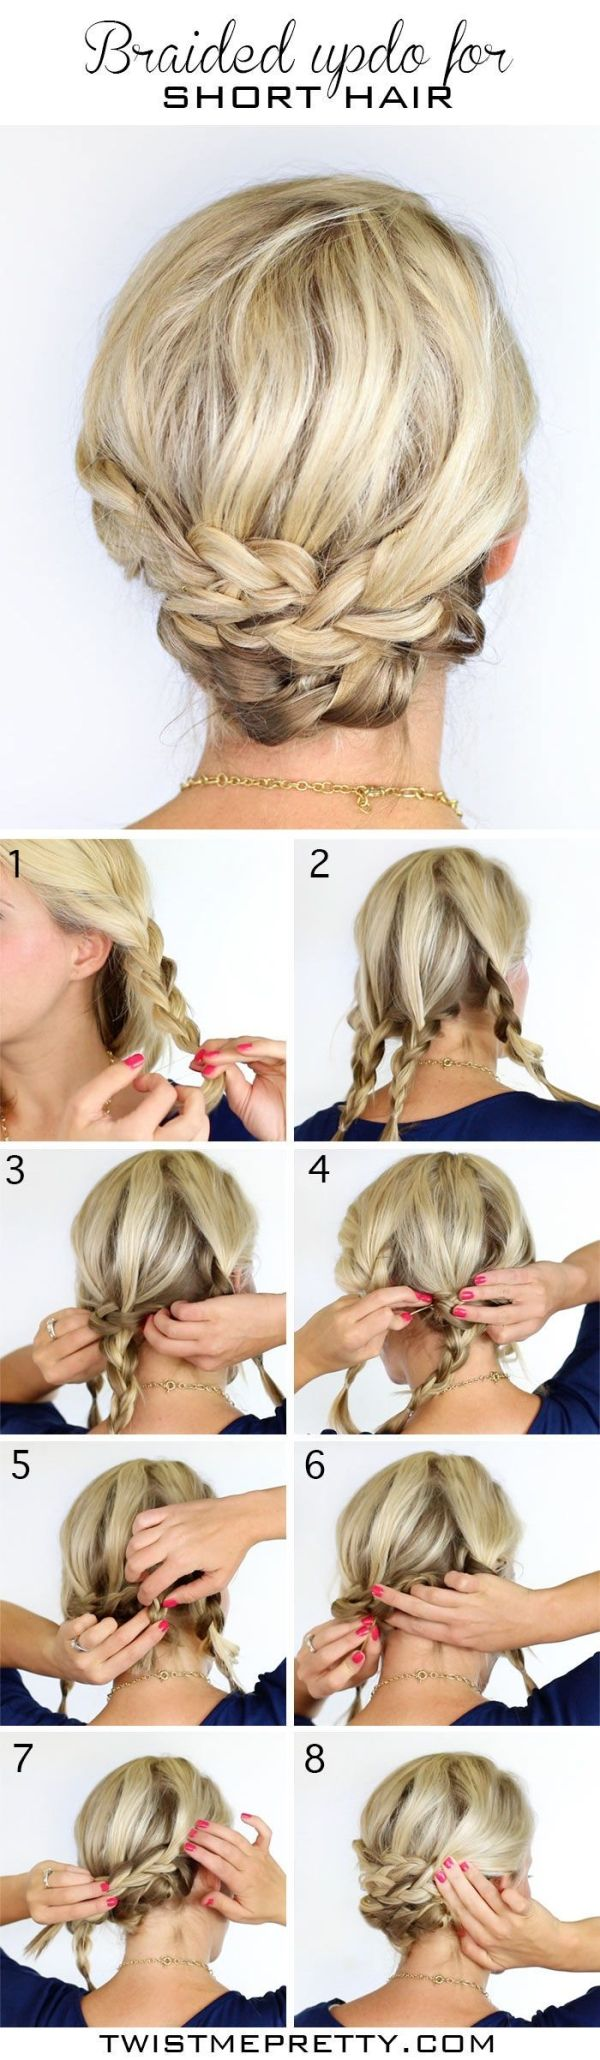 Fa fancy hair bun accessories - Braided Updo Hairstyle For Short Hair By Angie